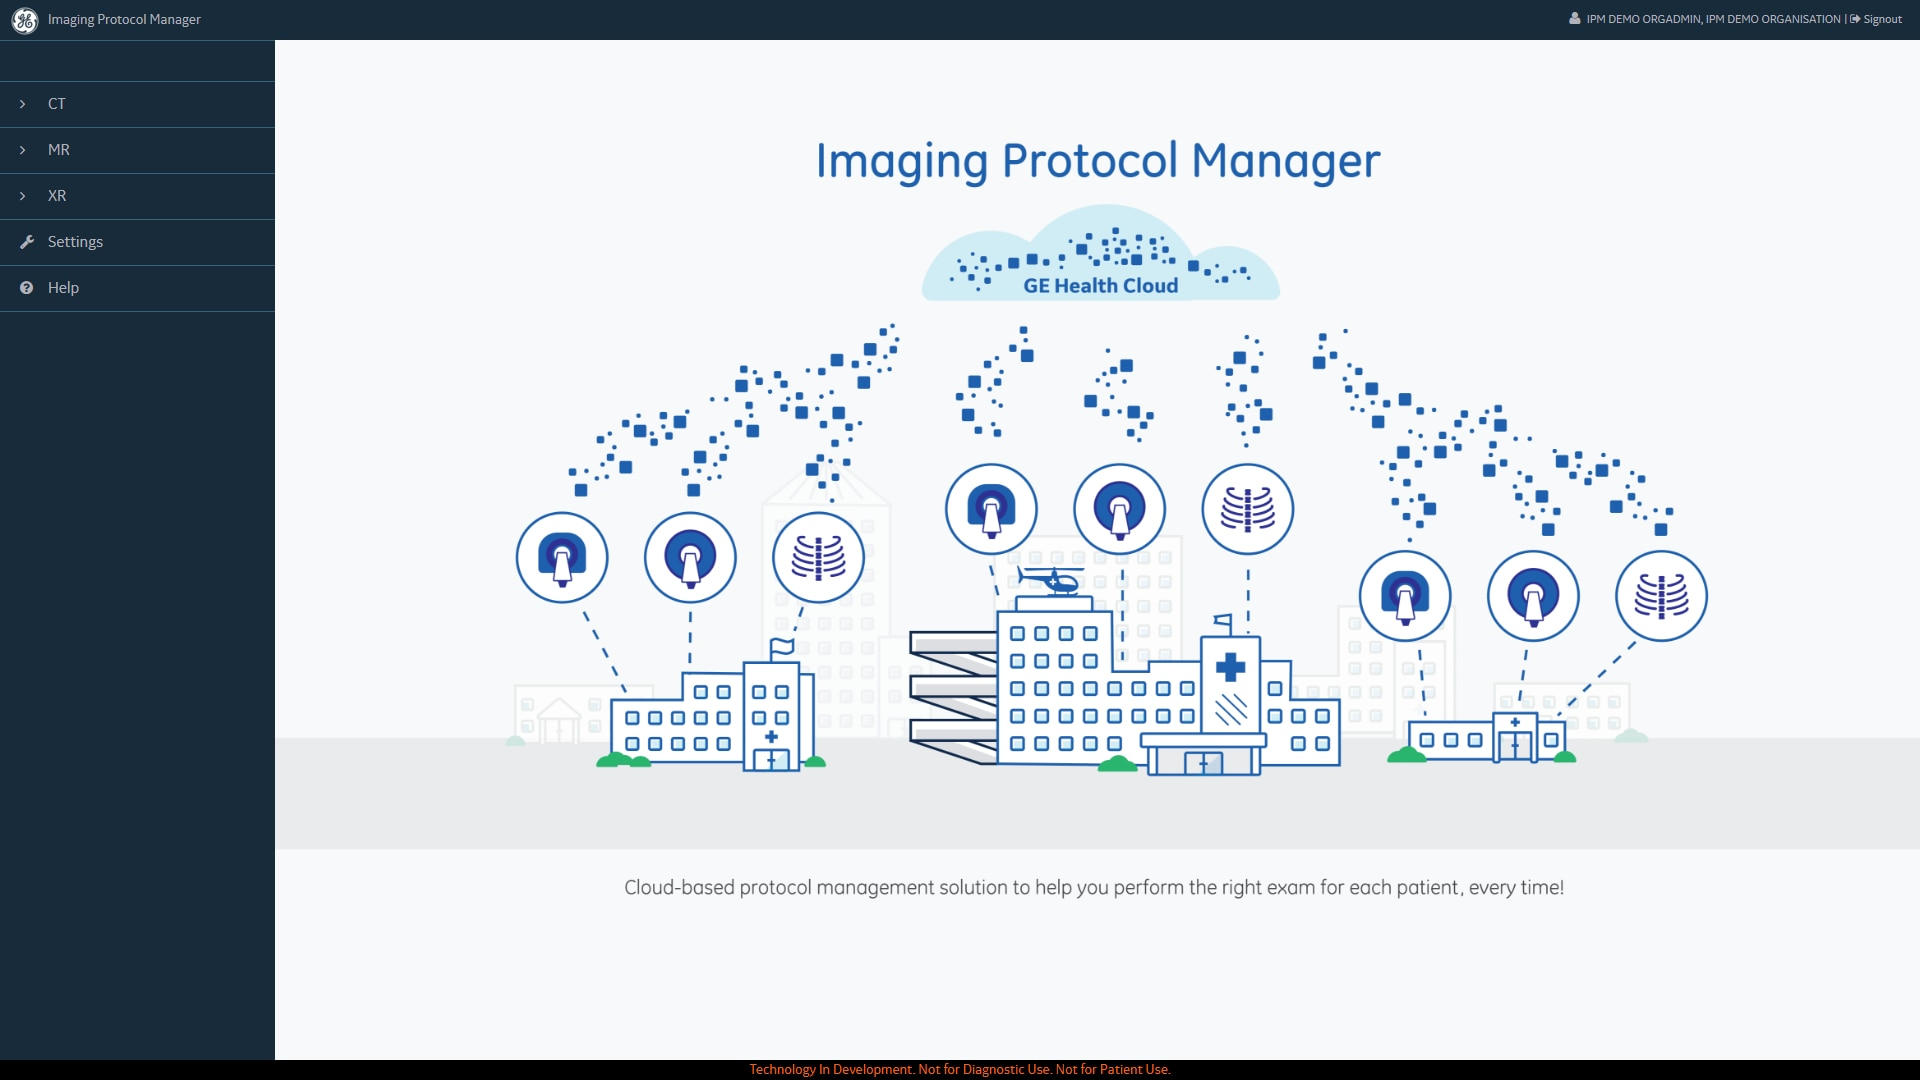 A screenshot of GE Healthcare Imaging Protocol Manager workflow.